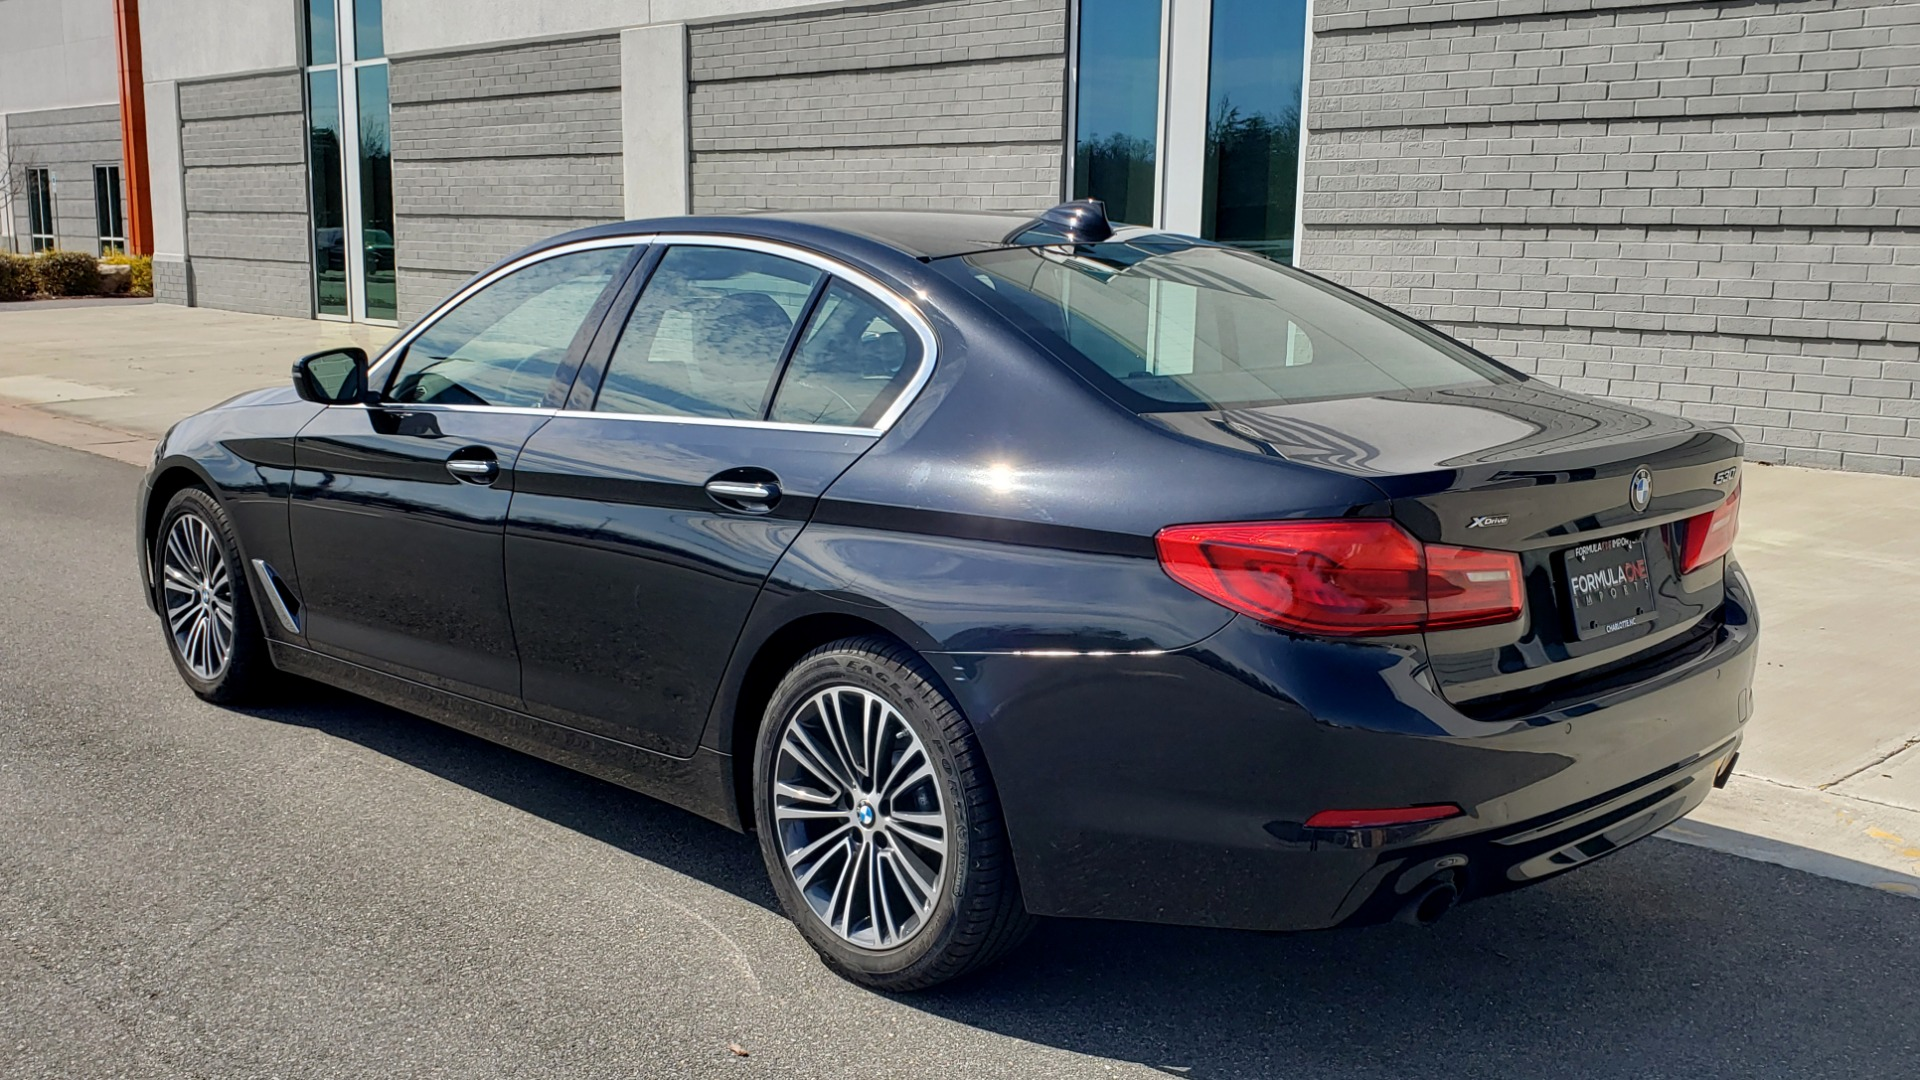 Used 2018 BMW 5 SERIES 530I XDRIVE PREMIUM / NAV / SUNROOF / DRVR ASST / REARVIEW for sale Sold at Formula Imports in Charlotte NC 28227 5